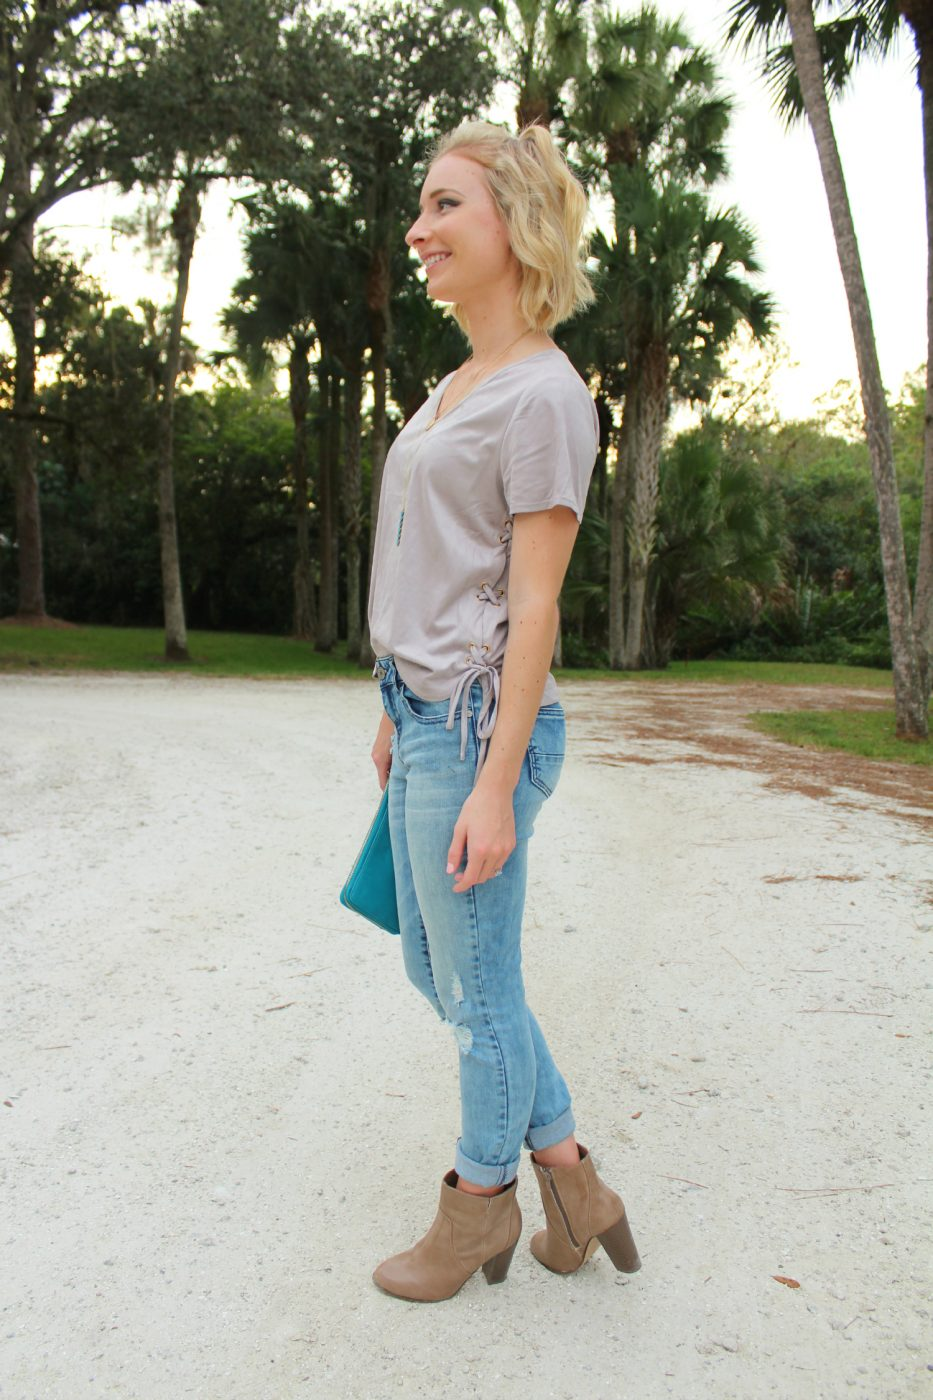 Suede, booties, and boyfriend jeans!